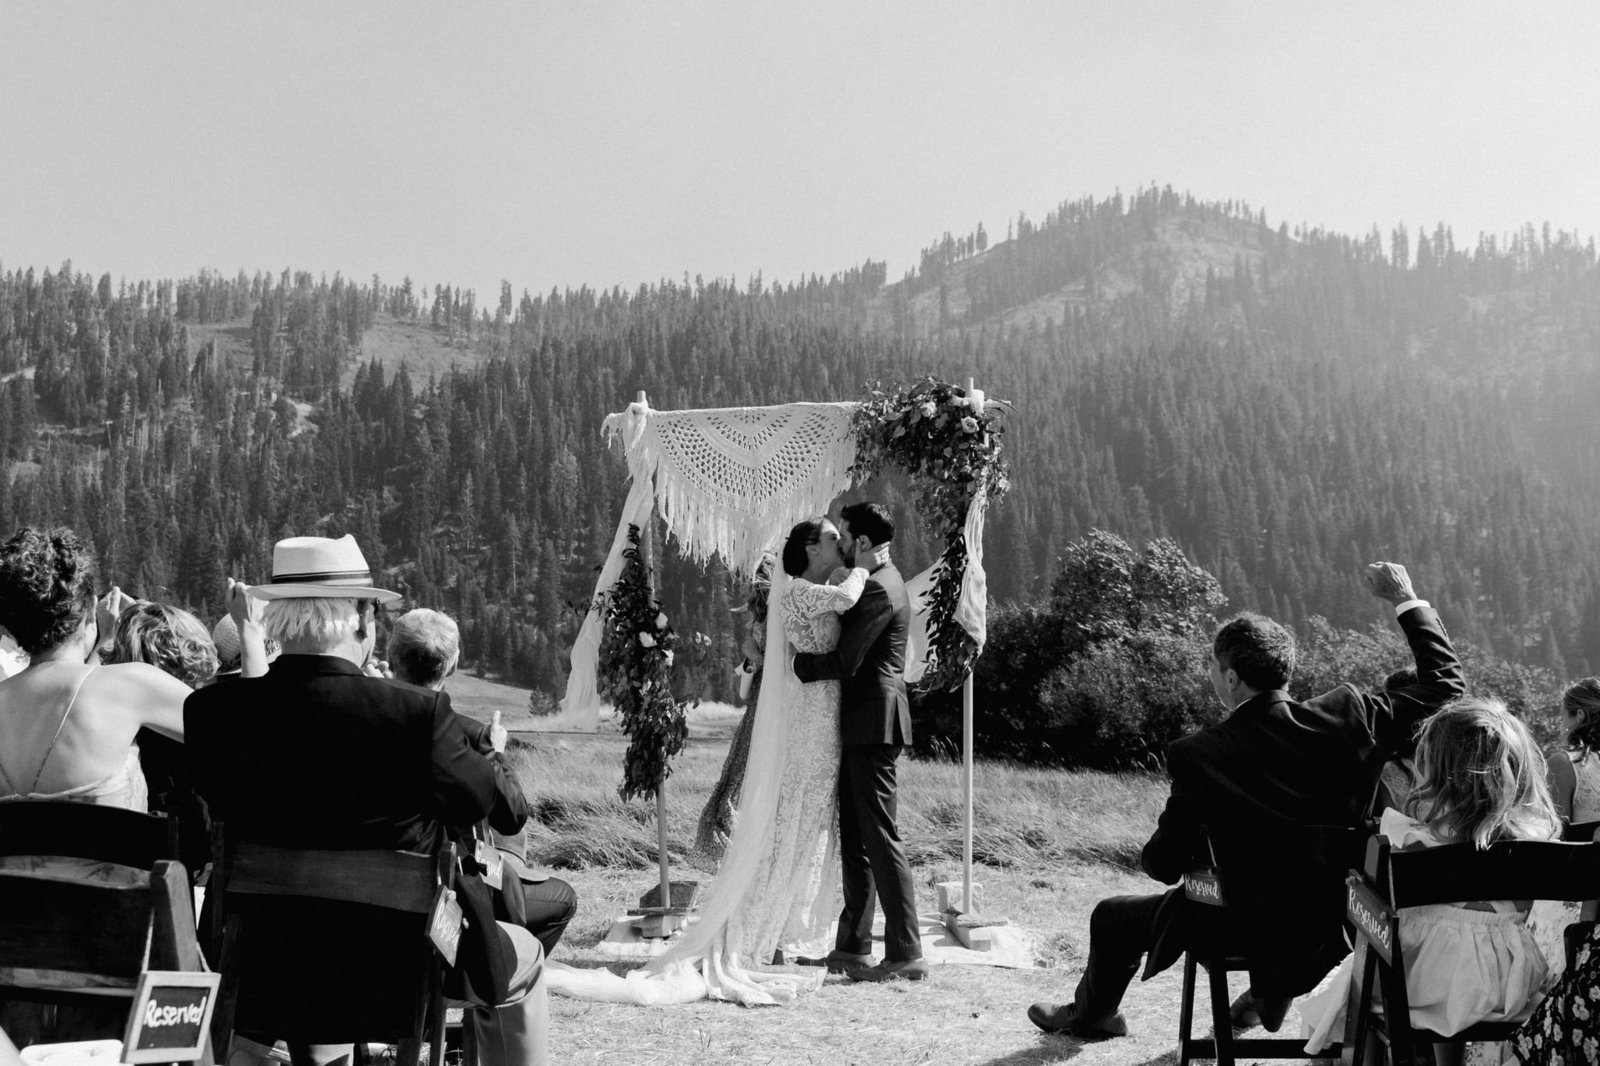 squaw-valley-stables-wedding-marble-rye-photography-ceremony-200